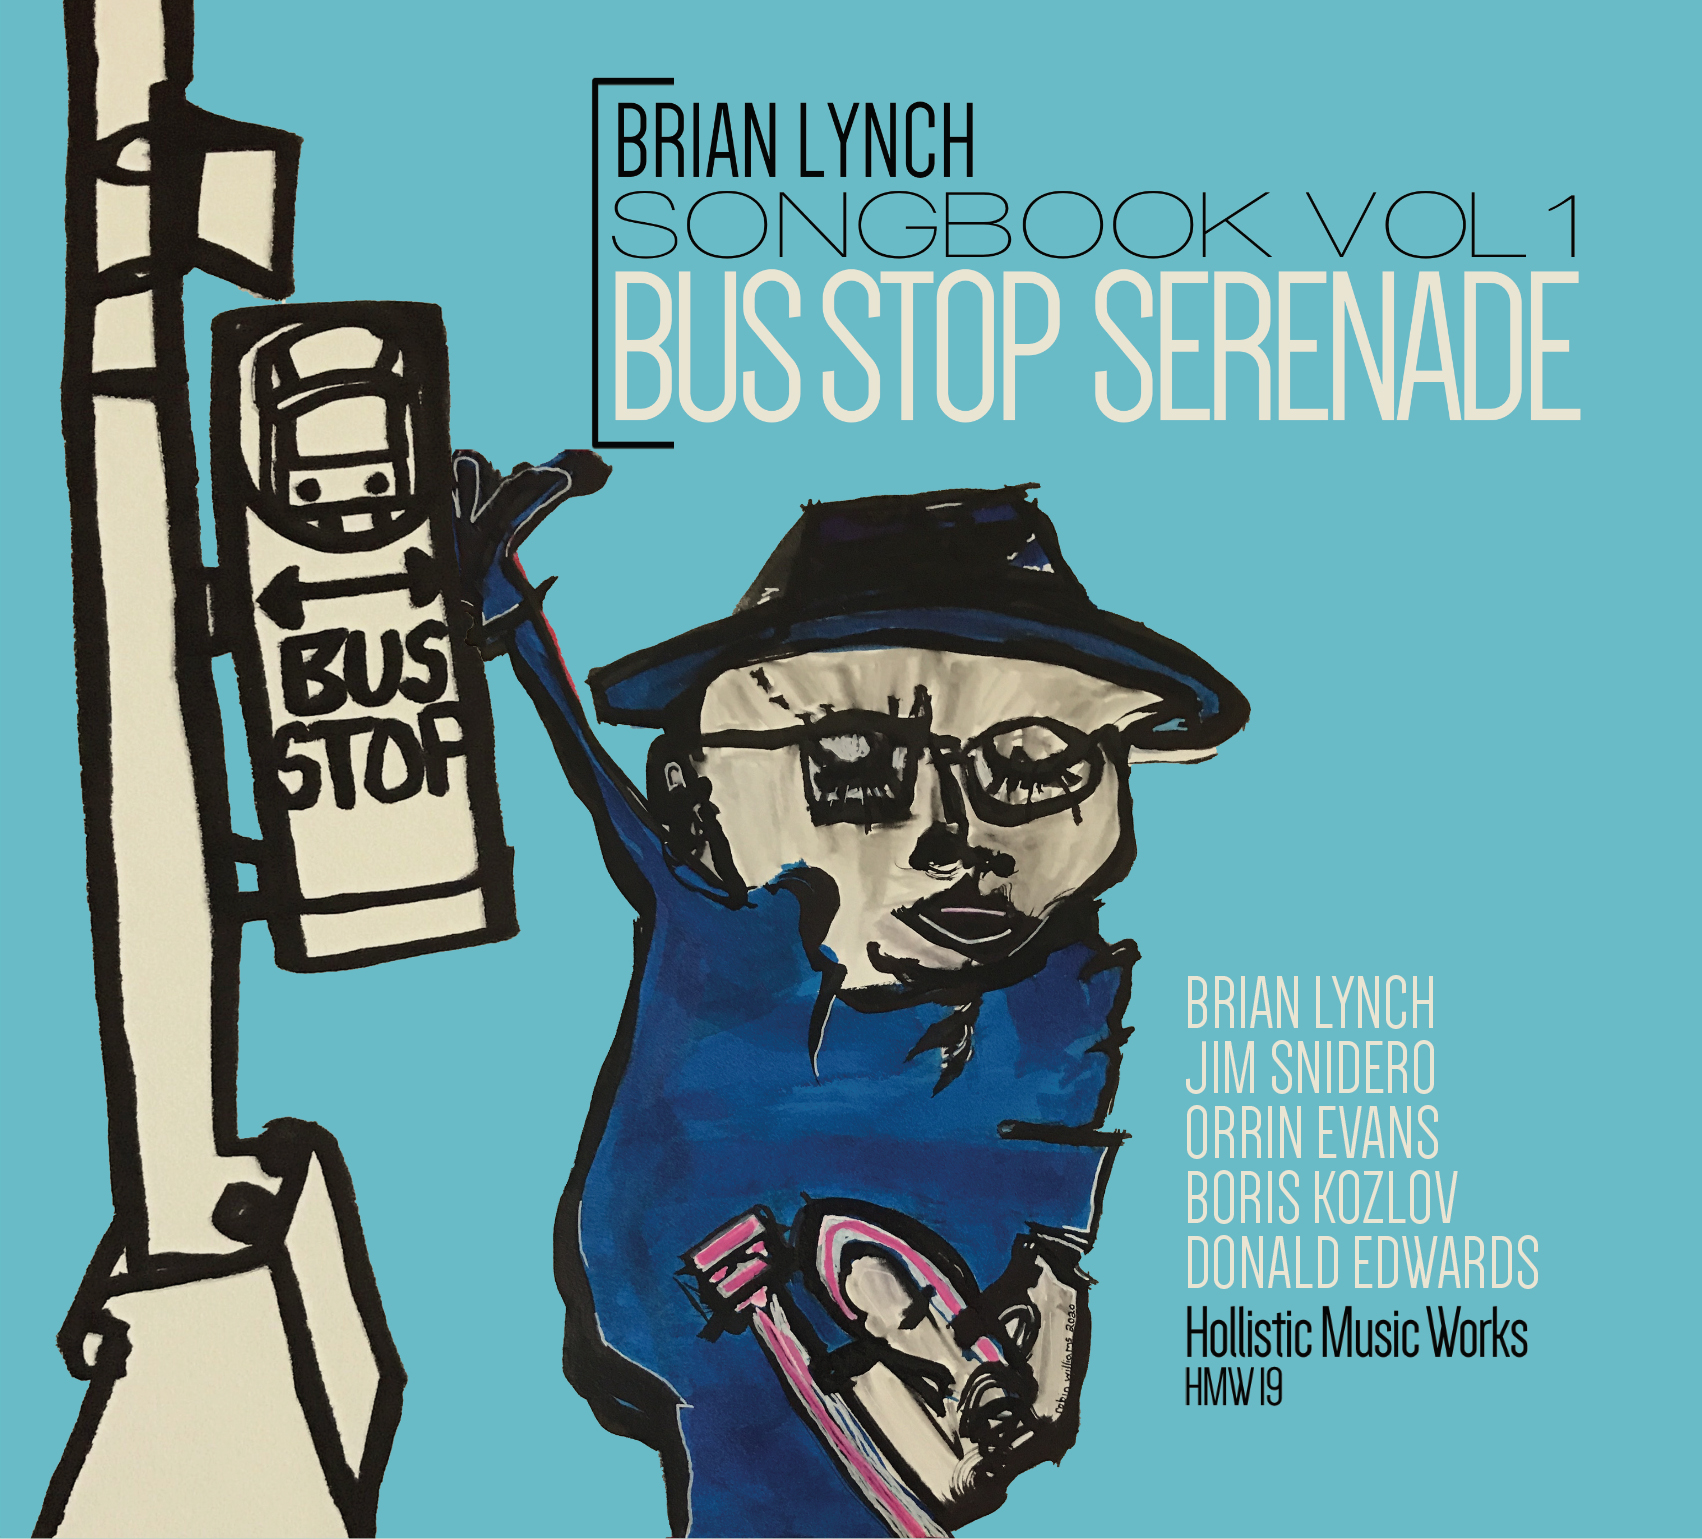 NEW RELEASE: 'Brian Lynch Songbook Vol. 1: Bus Stop Serenade' is out October 15, 2021 via Hollistic MusicWorks